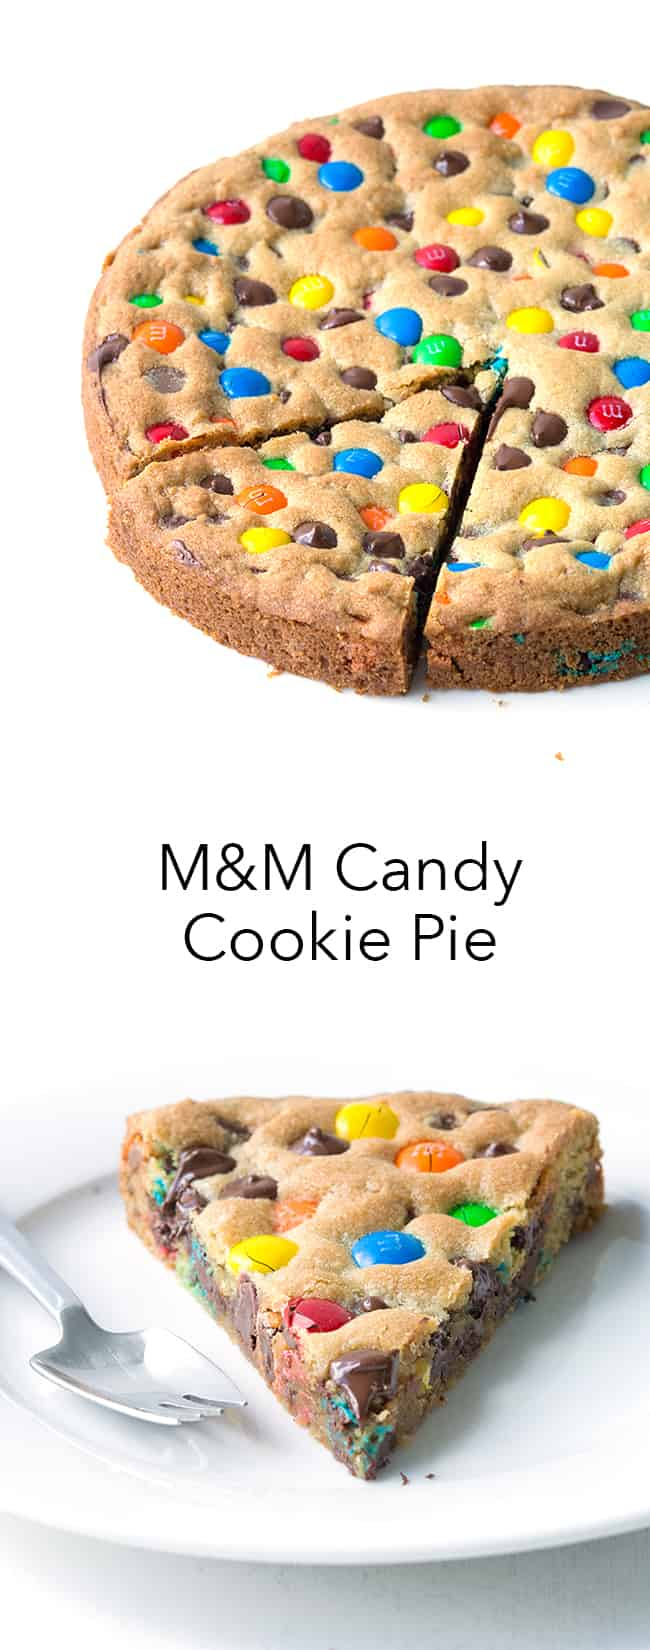 M&M Candy Cookie Pie | Sweetest Menu